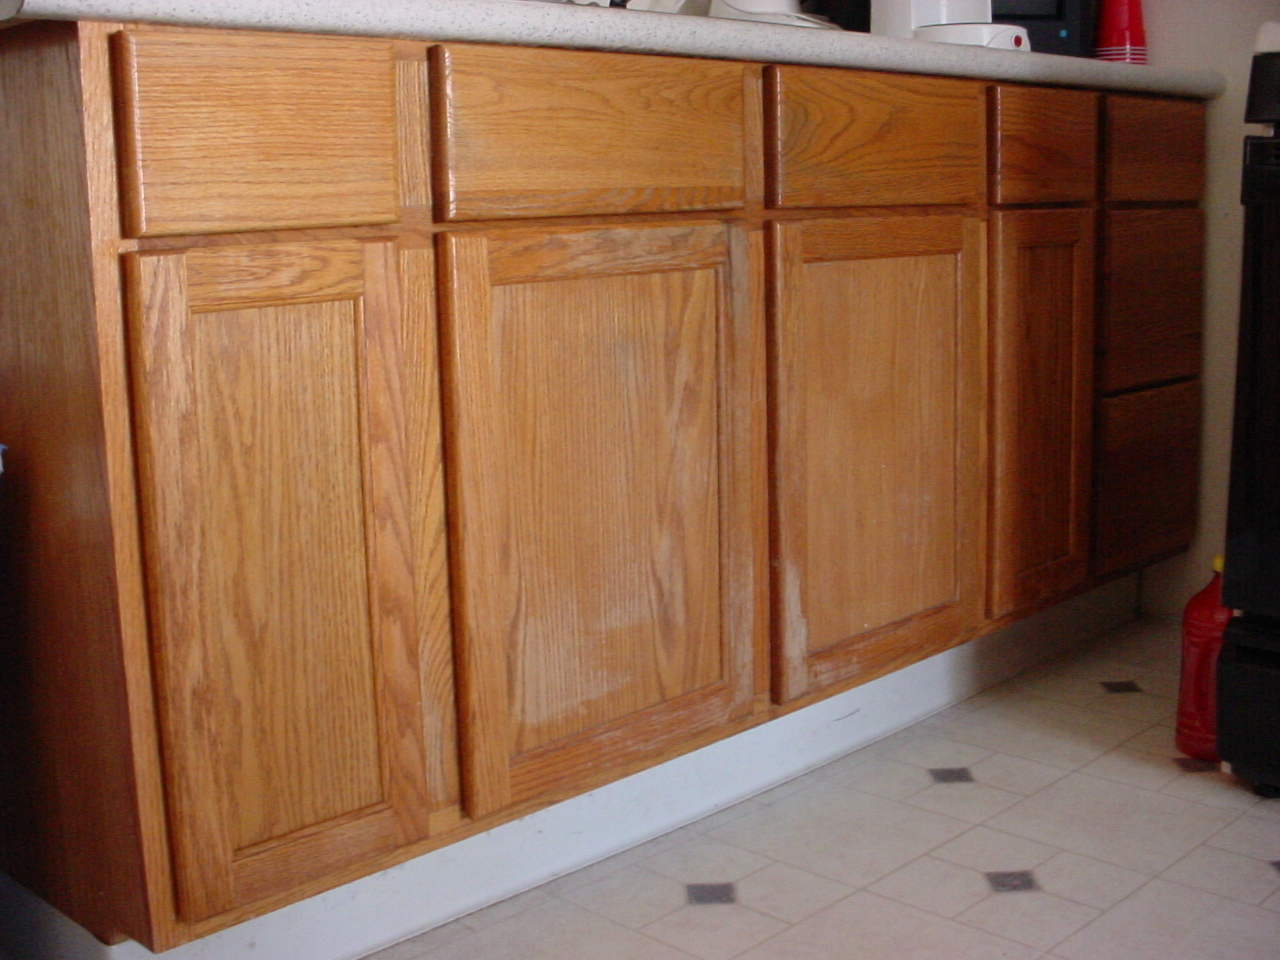 How to make your cabinets look like new kitchen cabinets for Latest kitchen cabinets